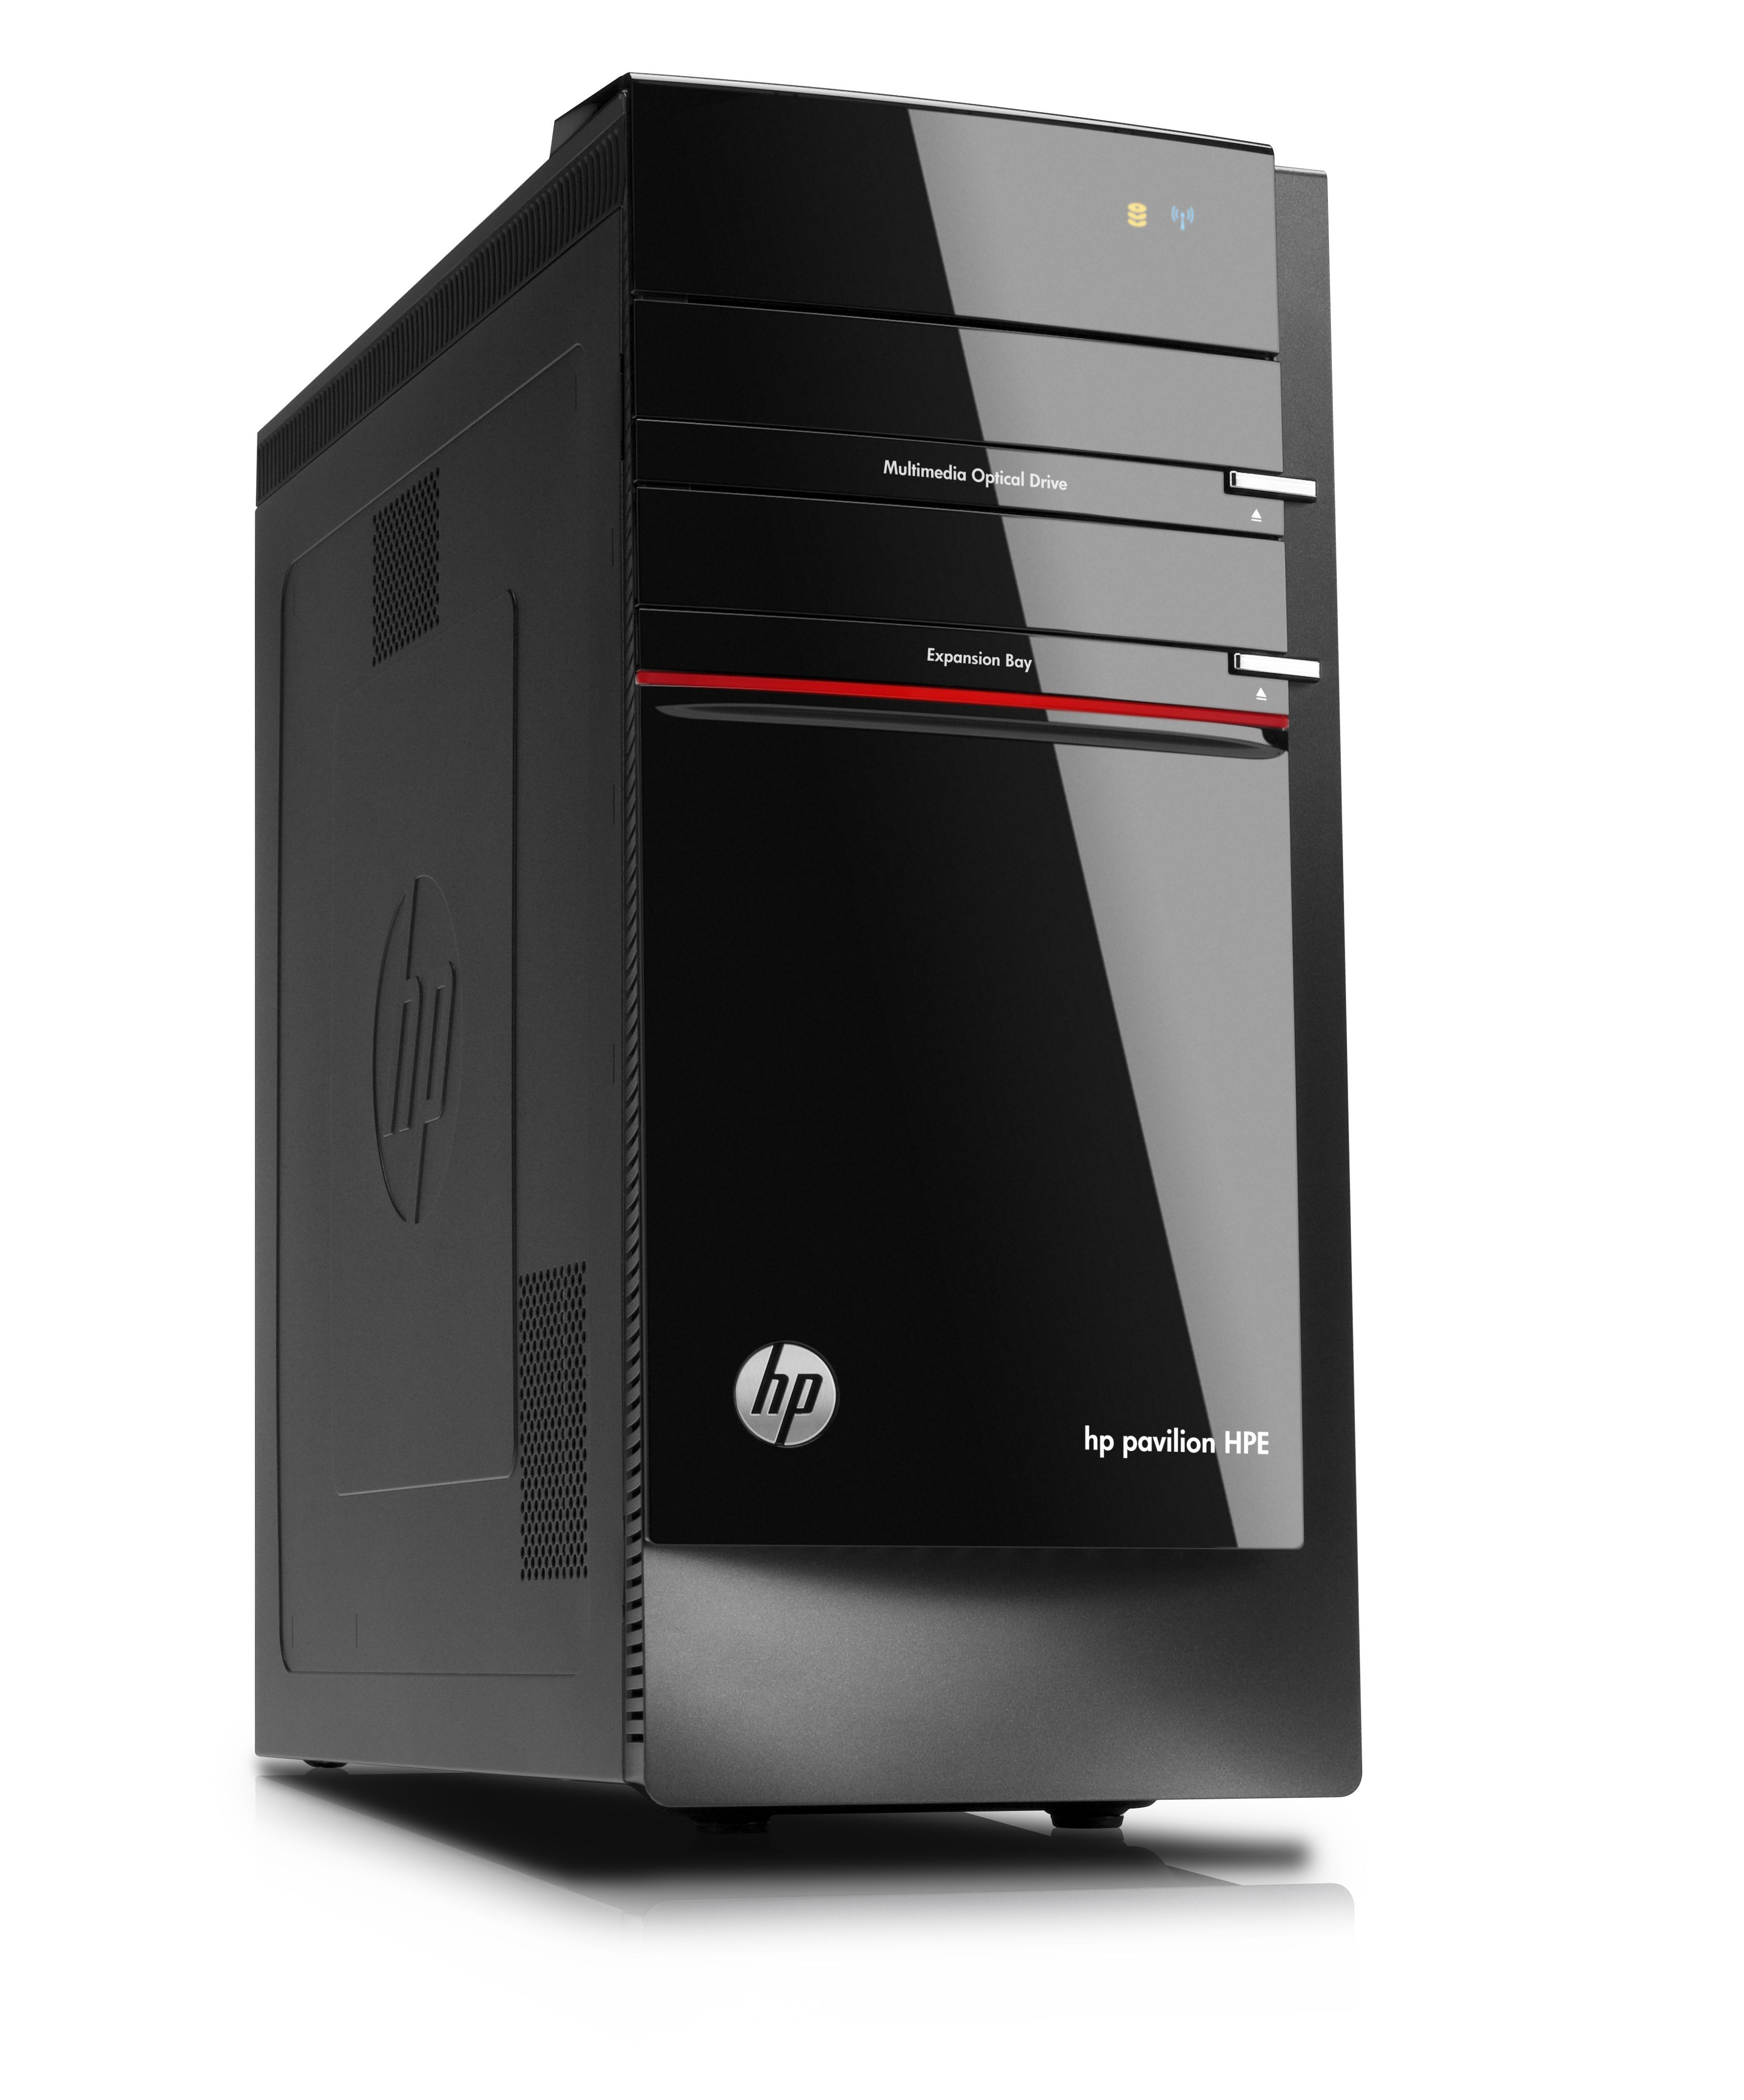 The Pavilion Elite received the biggest design overhaul of HP's new line-up.